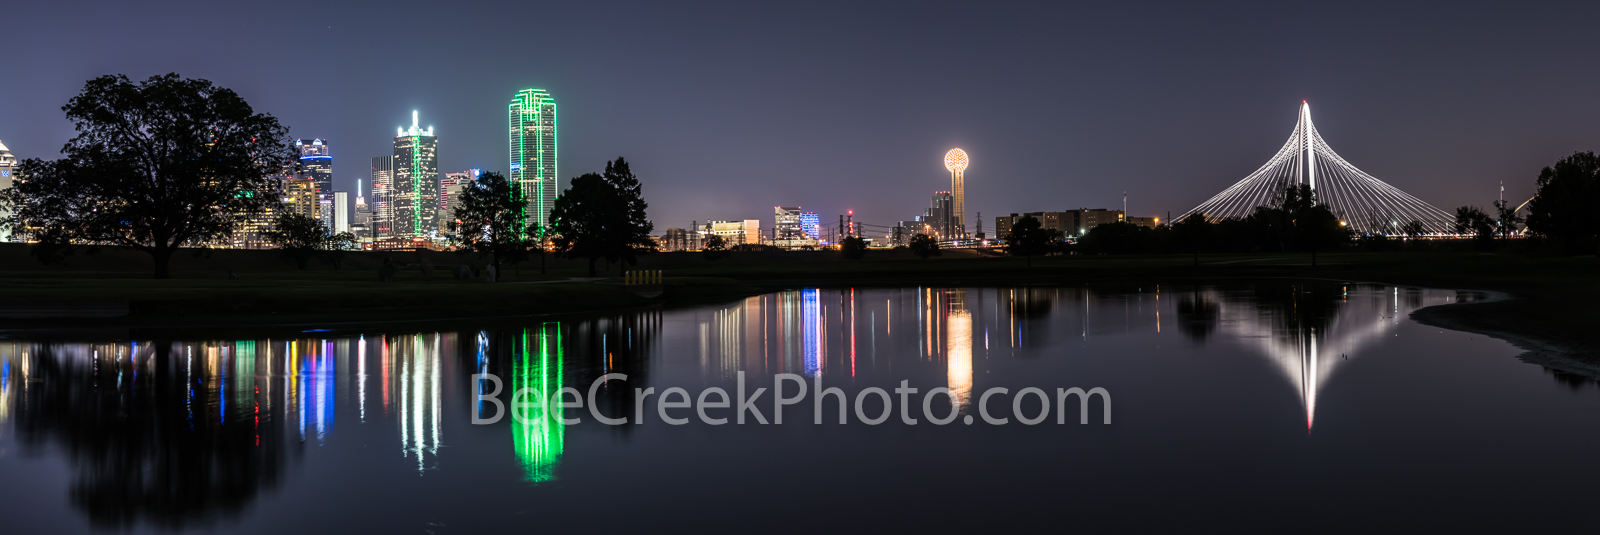 dallas, skyline, dallas skyline, downtown dallas, dallas tx, city of dallas, dallas skyline night, pictures of dallas, reflections, downtown, margaret hunt hill bridge, reunion tower,, photo